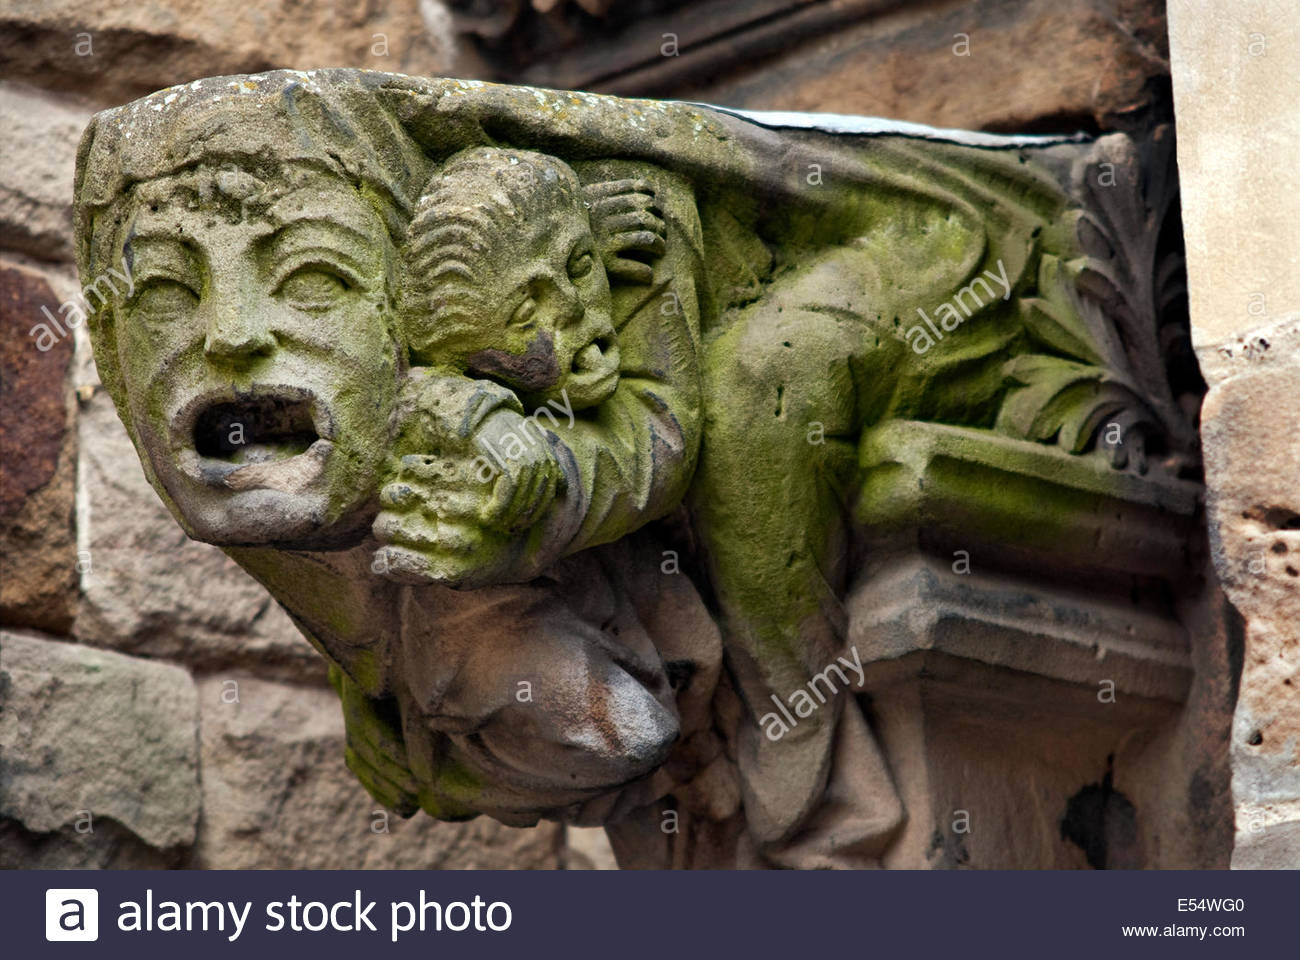 Architectural detail of St.Martin Church in Birmingham, England, showing a stone face in fear. - Stock Image